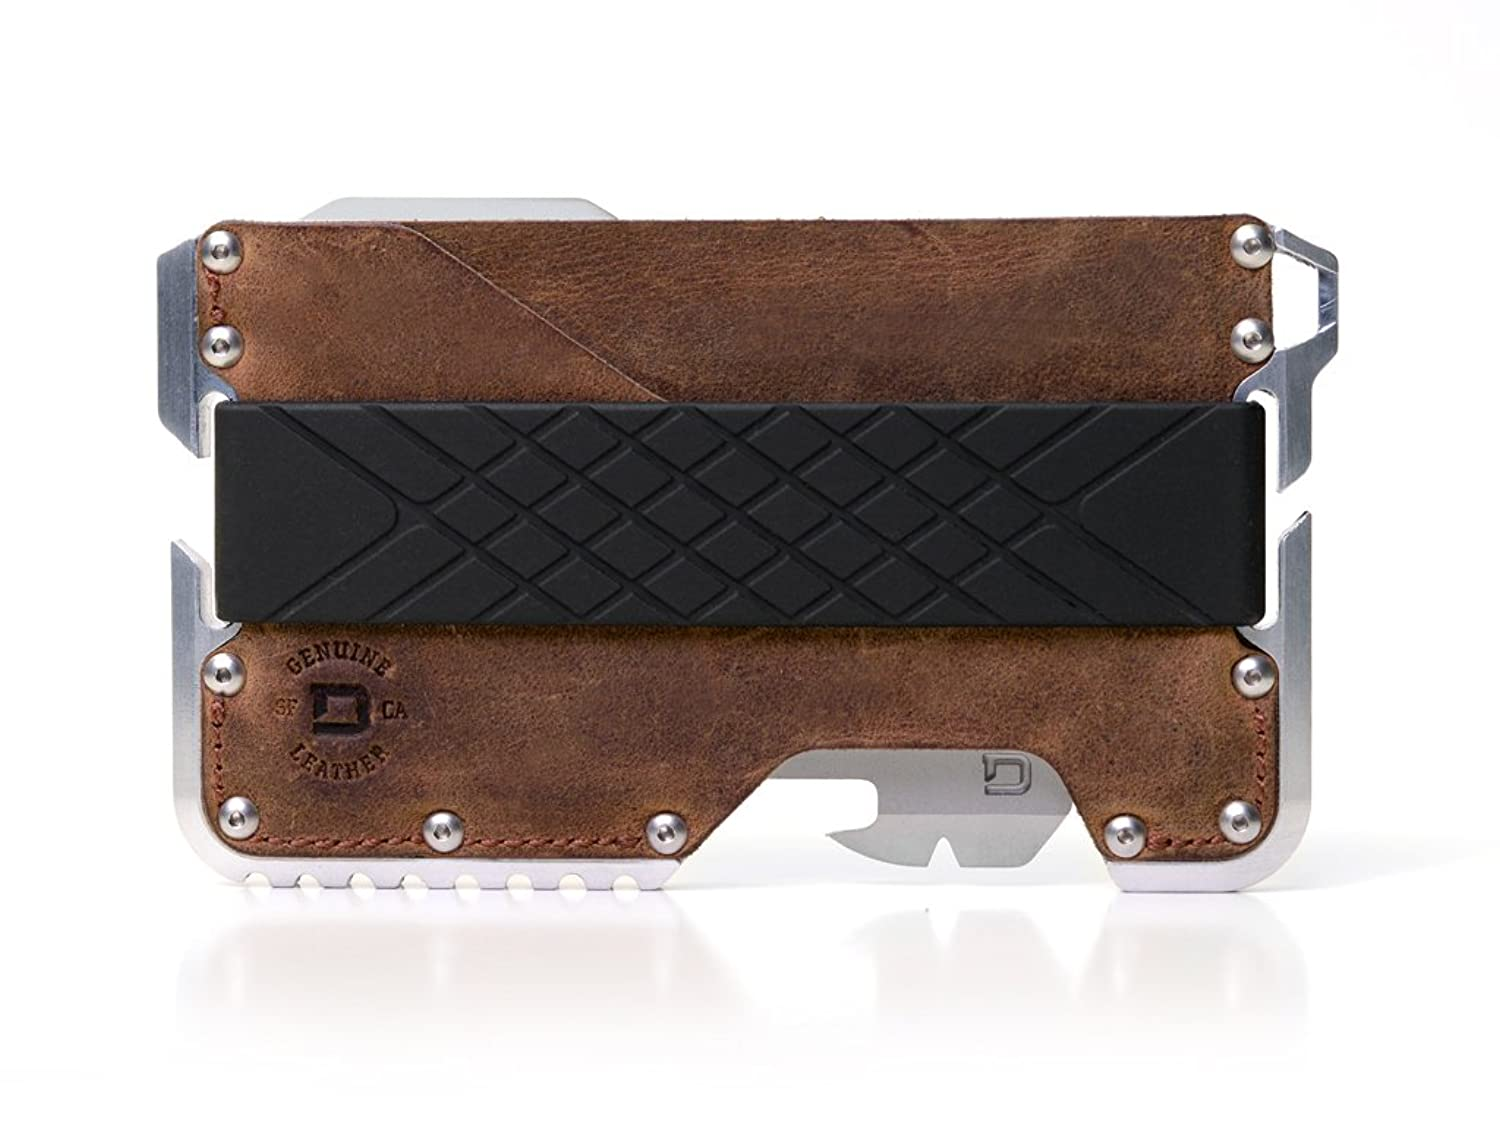 Dango Tactical Edc Wallet Made In Usa Genuine Leather Multitool